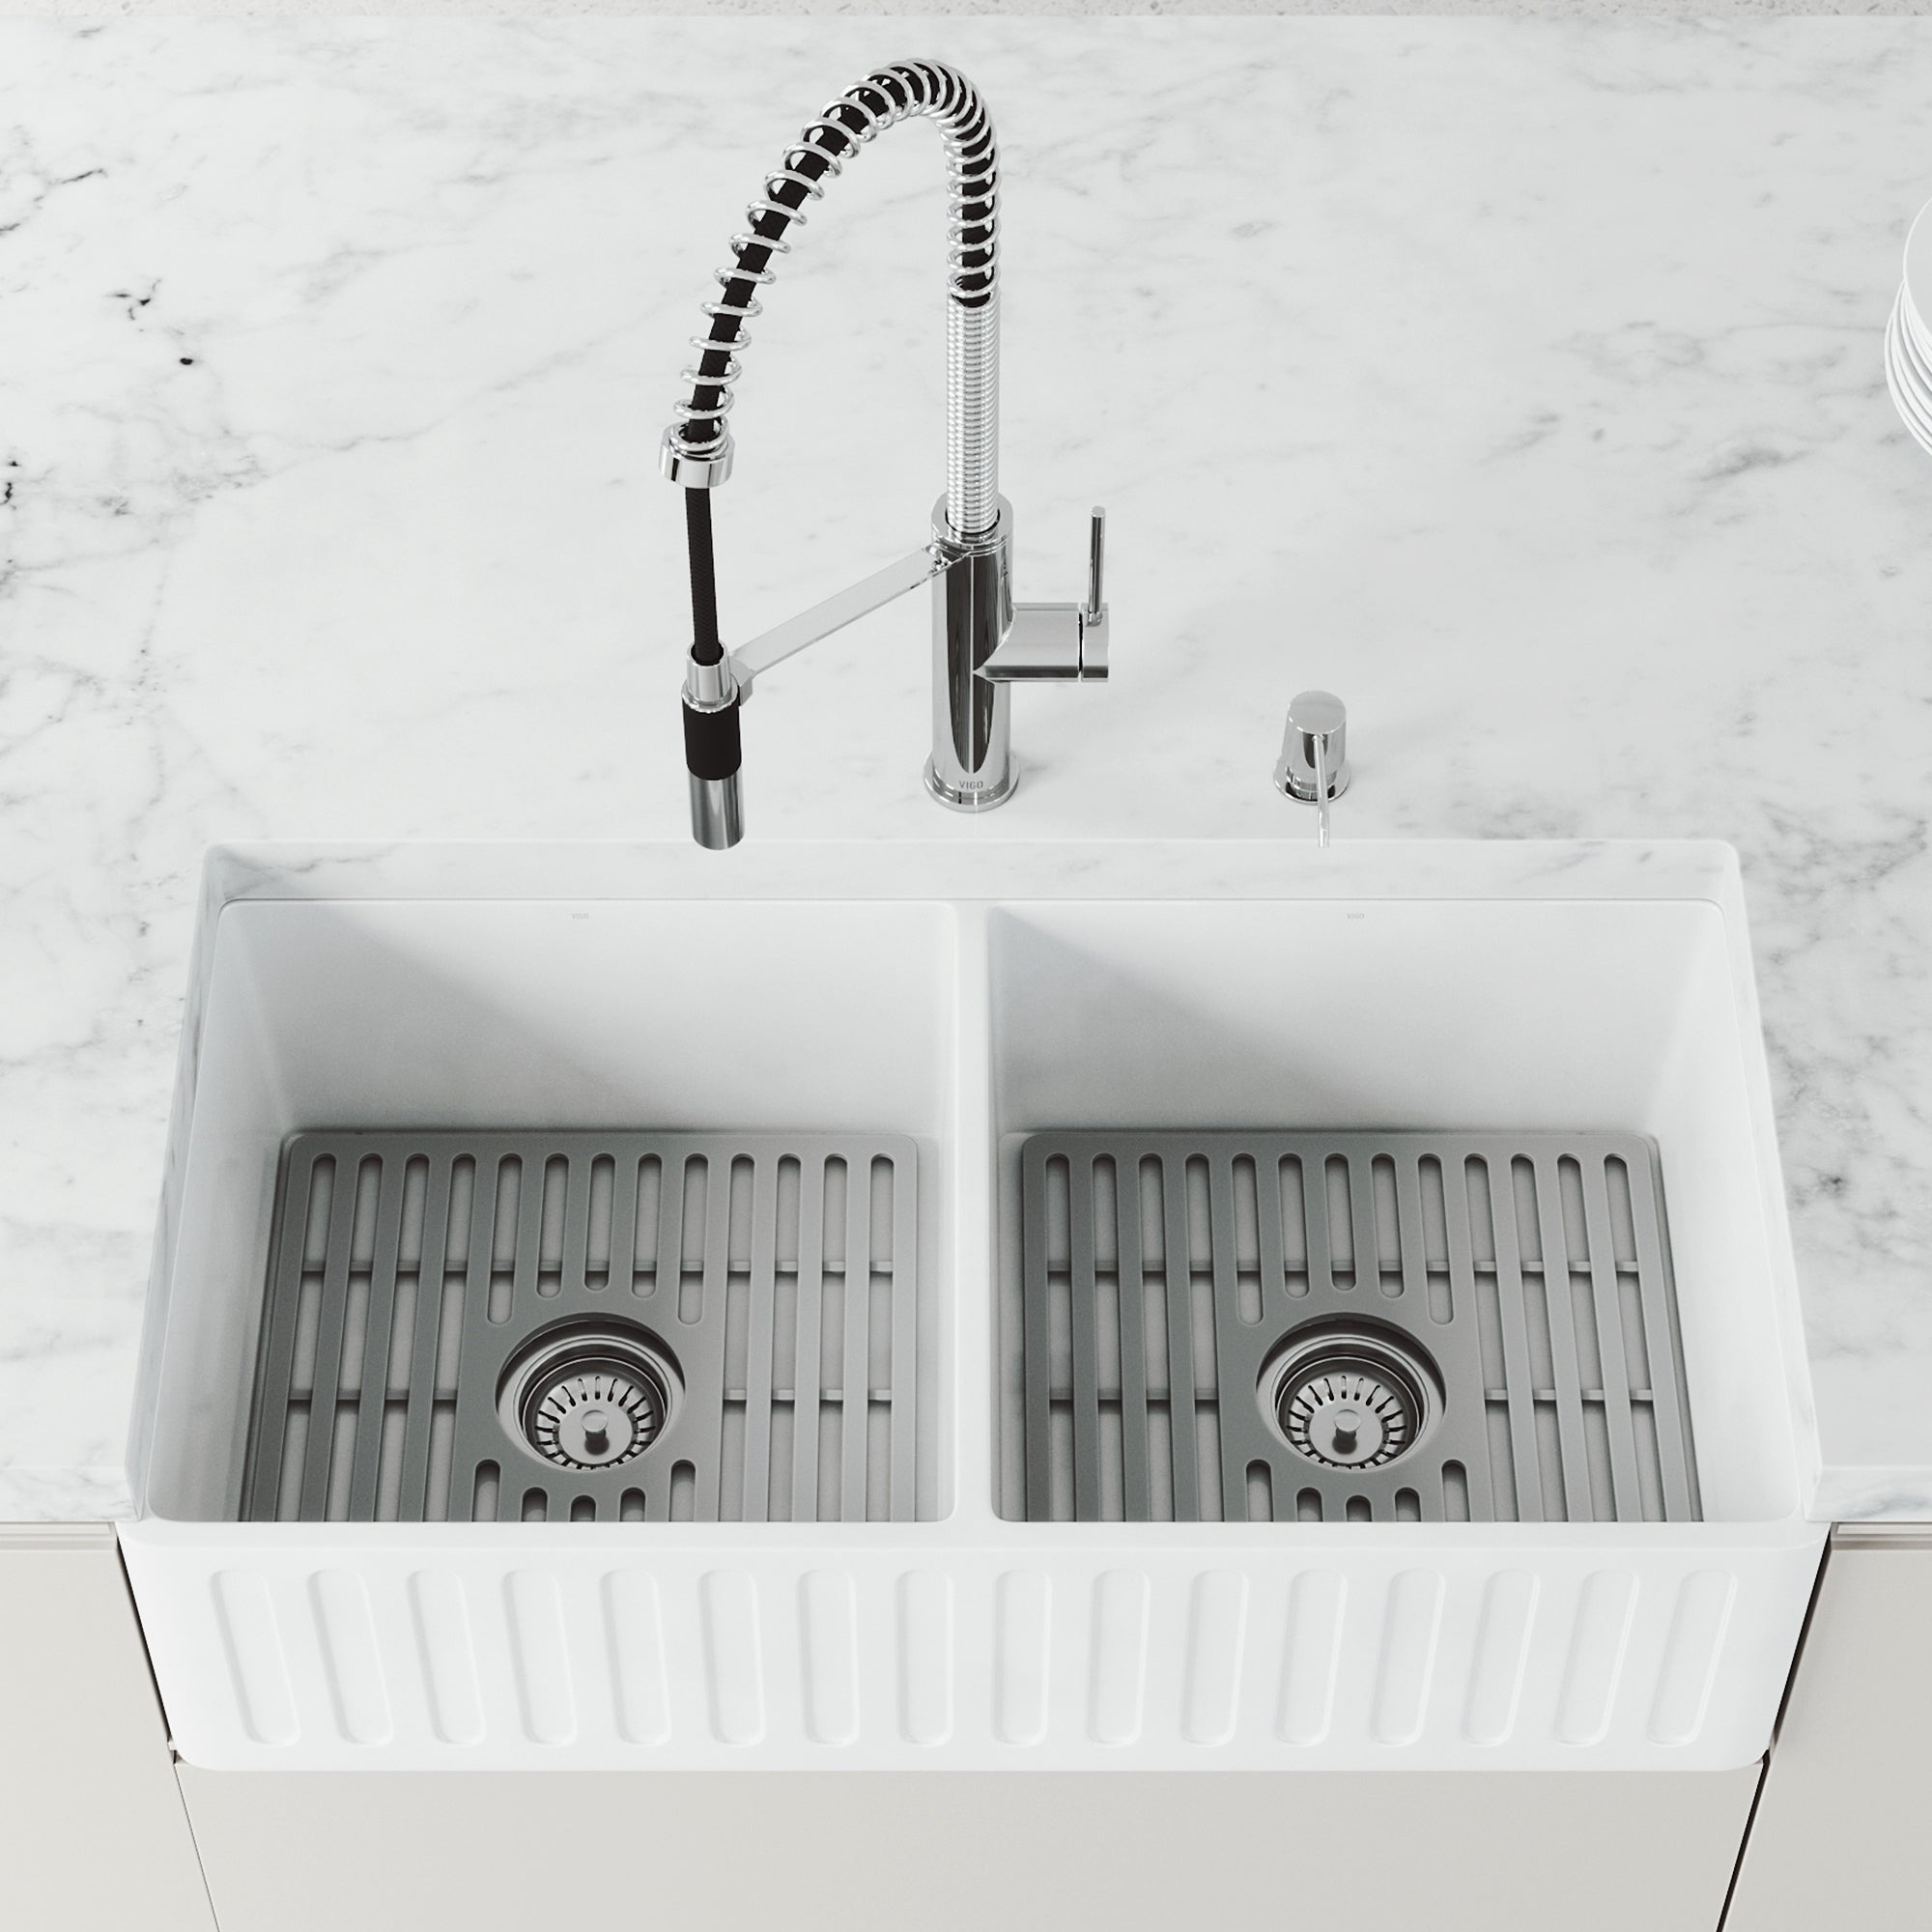 Matte Stone White Reversible Double Basin Kitchen Sink Set Grids Overstock 30893399 18 L X 33 W X 9 62 H